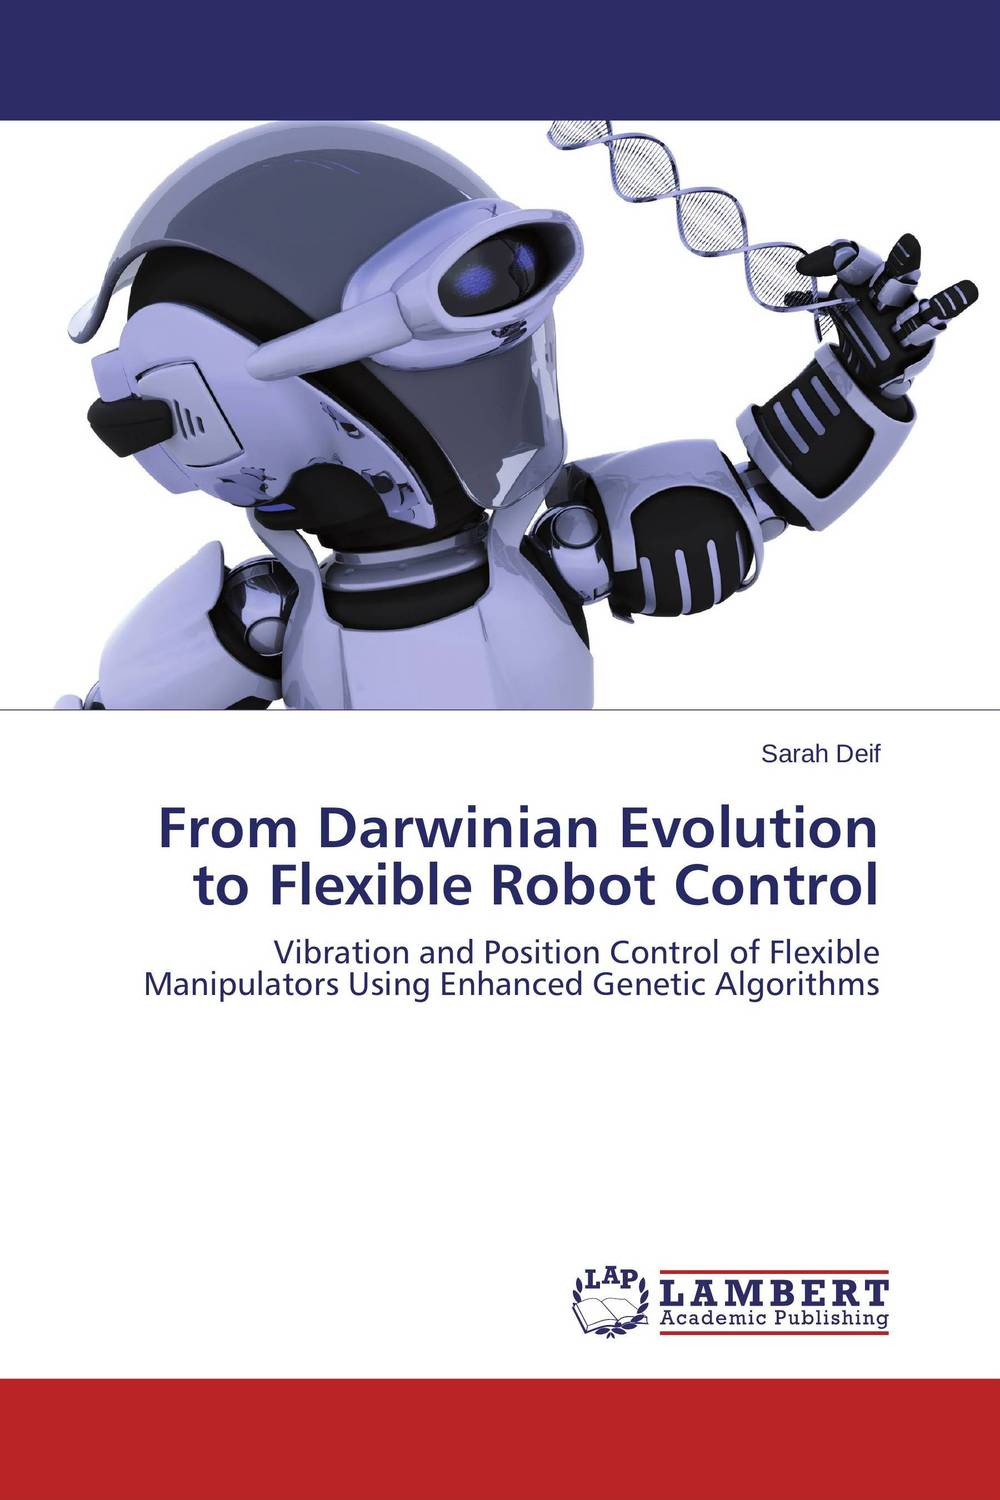 From Darwinian Evolution to Flexible Robot Control khalil ibrahim ayman a aly el naggar and ahmed a abo ismail intelligent control of flexible robots